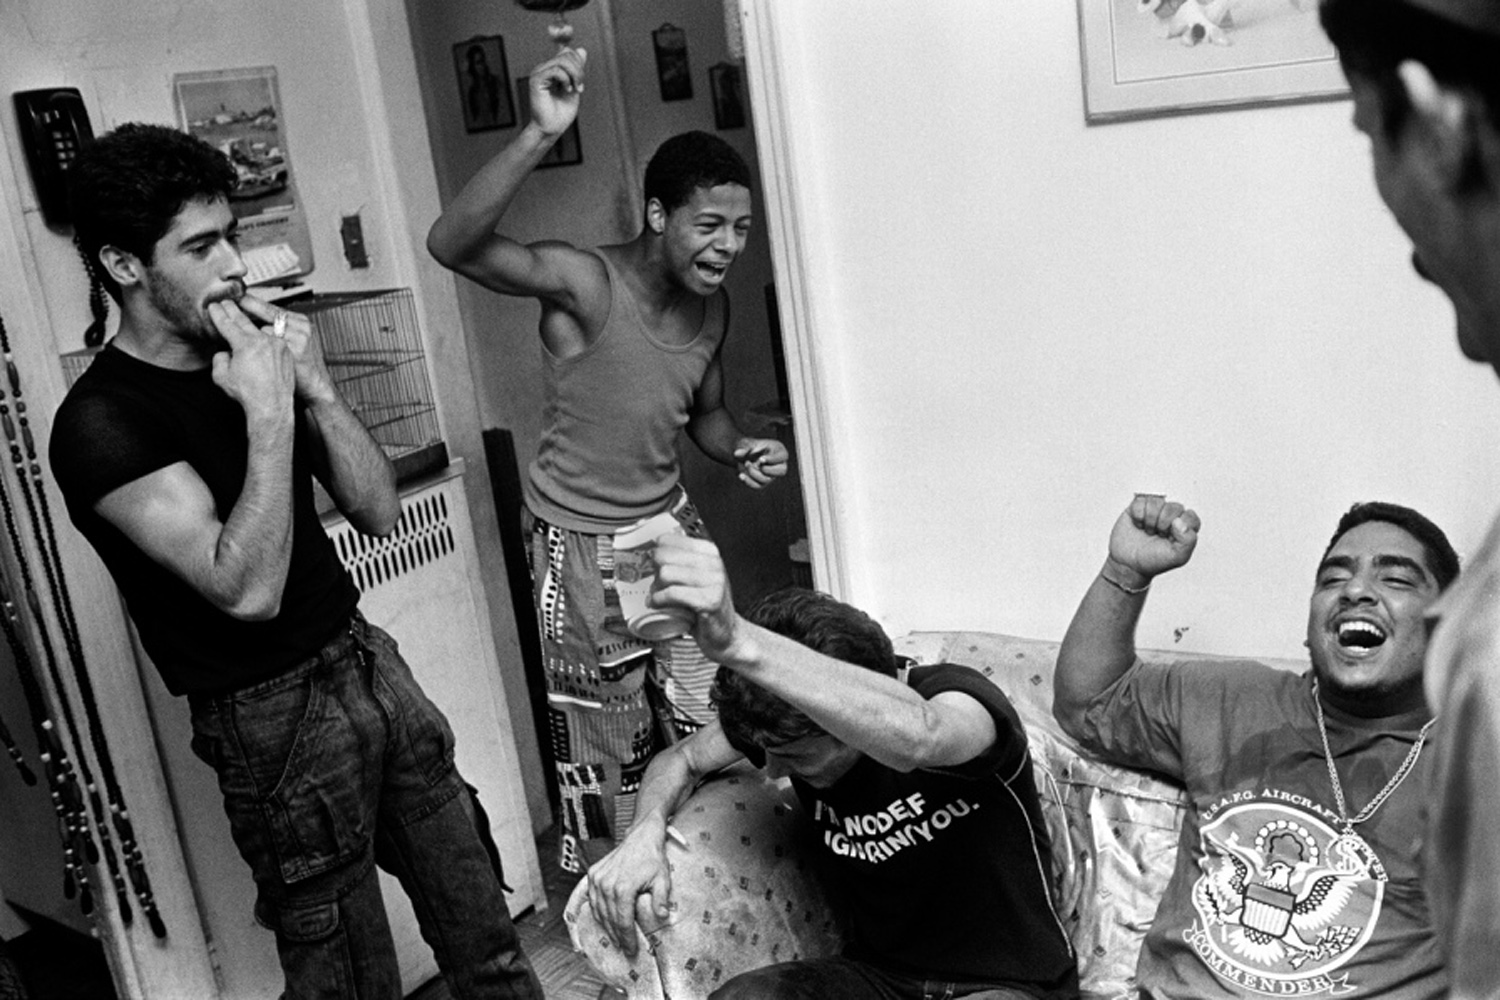 A scene at a party, from Bronx Boys (FotoEvidence, 2011) by Stephen Shames.